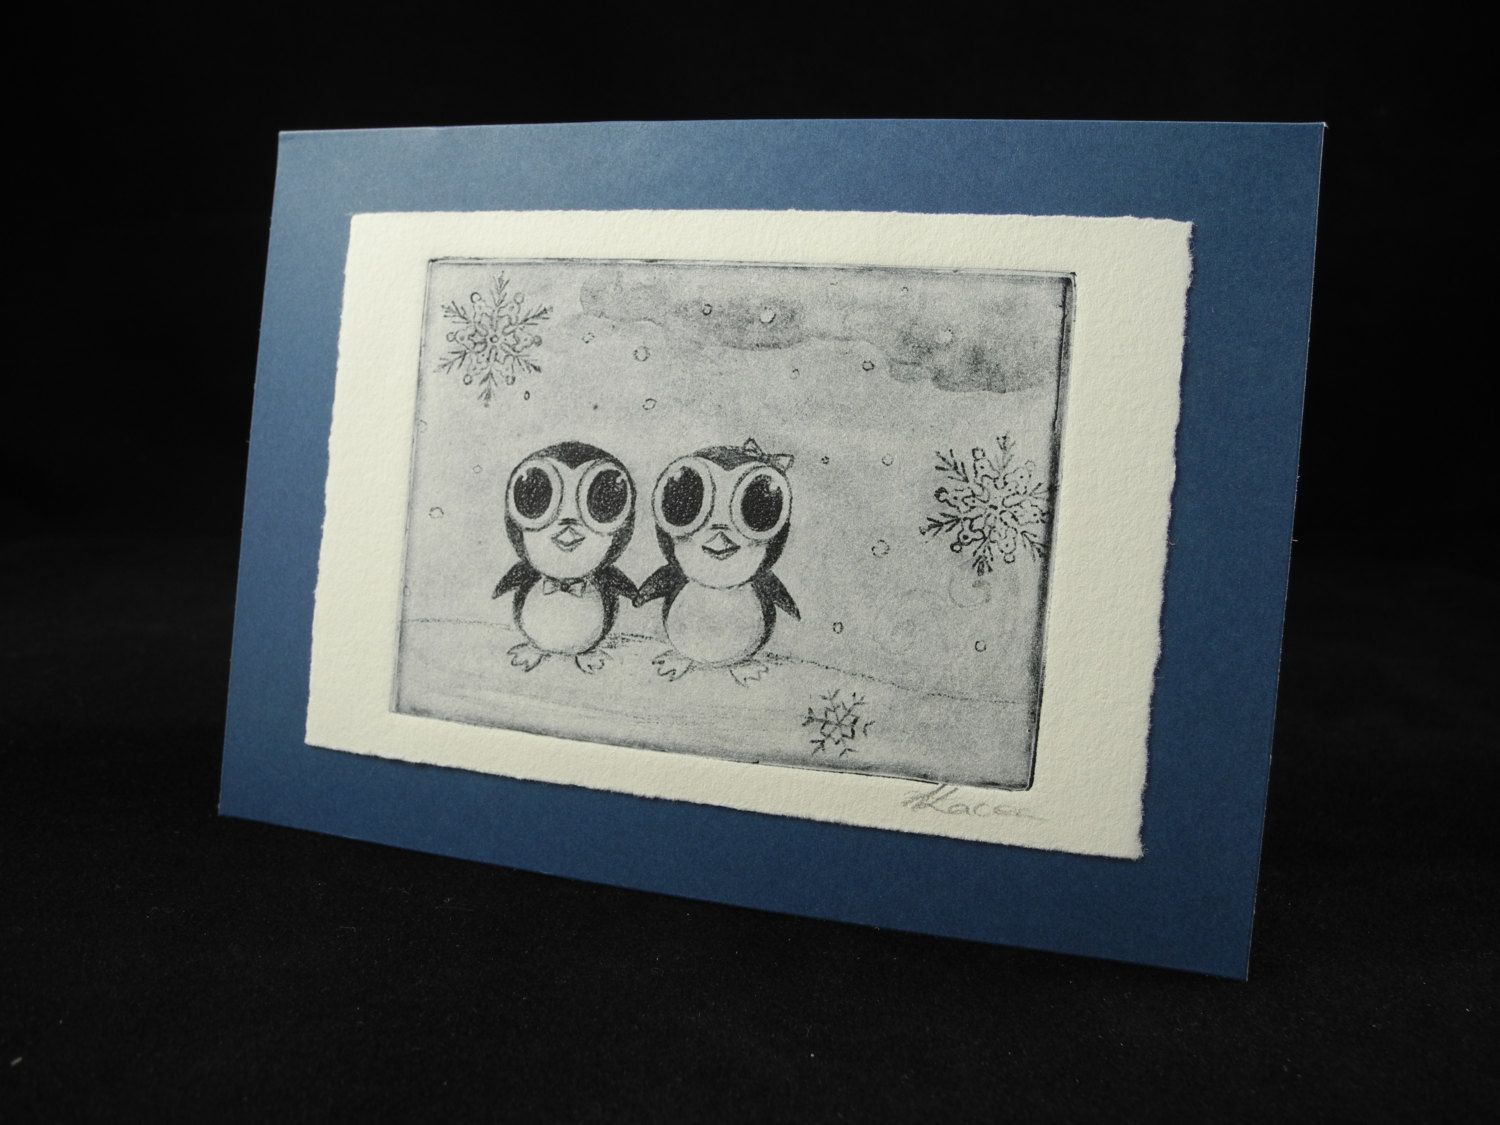 Winter Holiday Penguin Snow Landscape Handmade Card Blue White Etching Original Hand Pulled Print by TheArtfulCrafts on Etsy